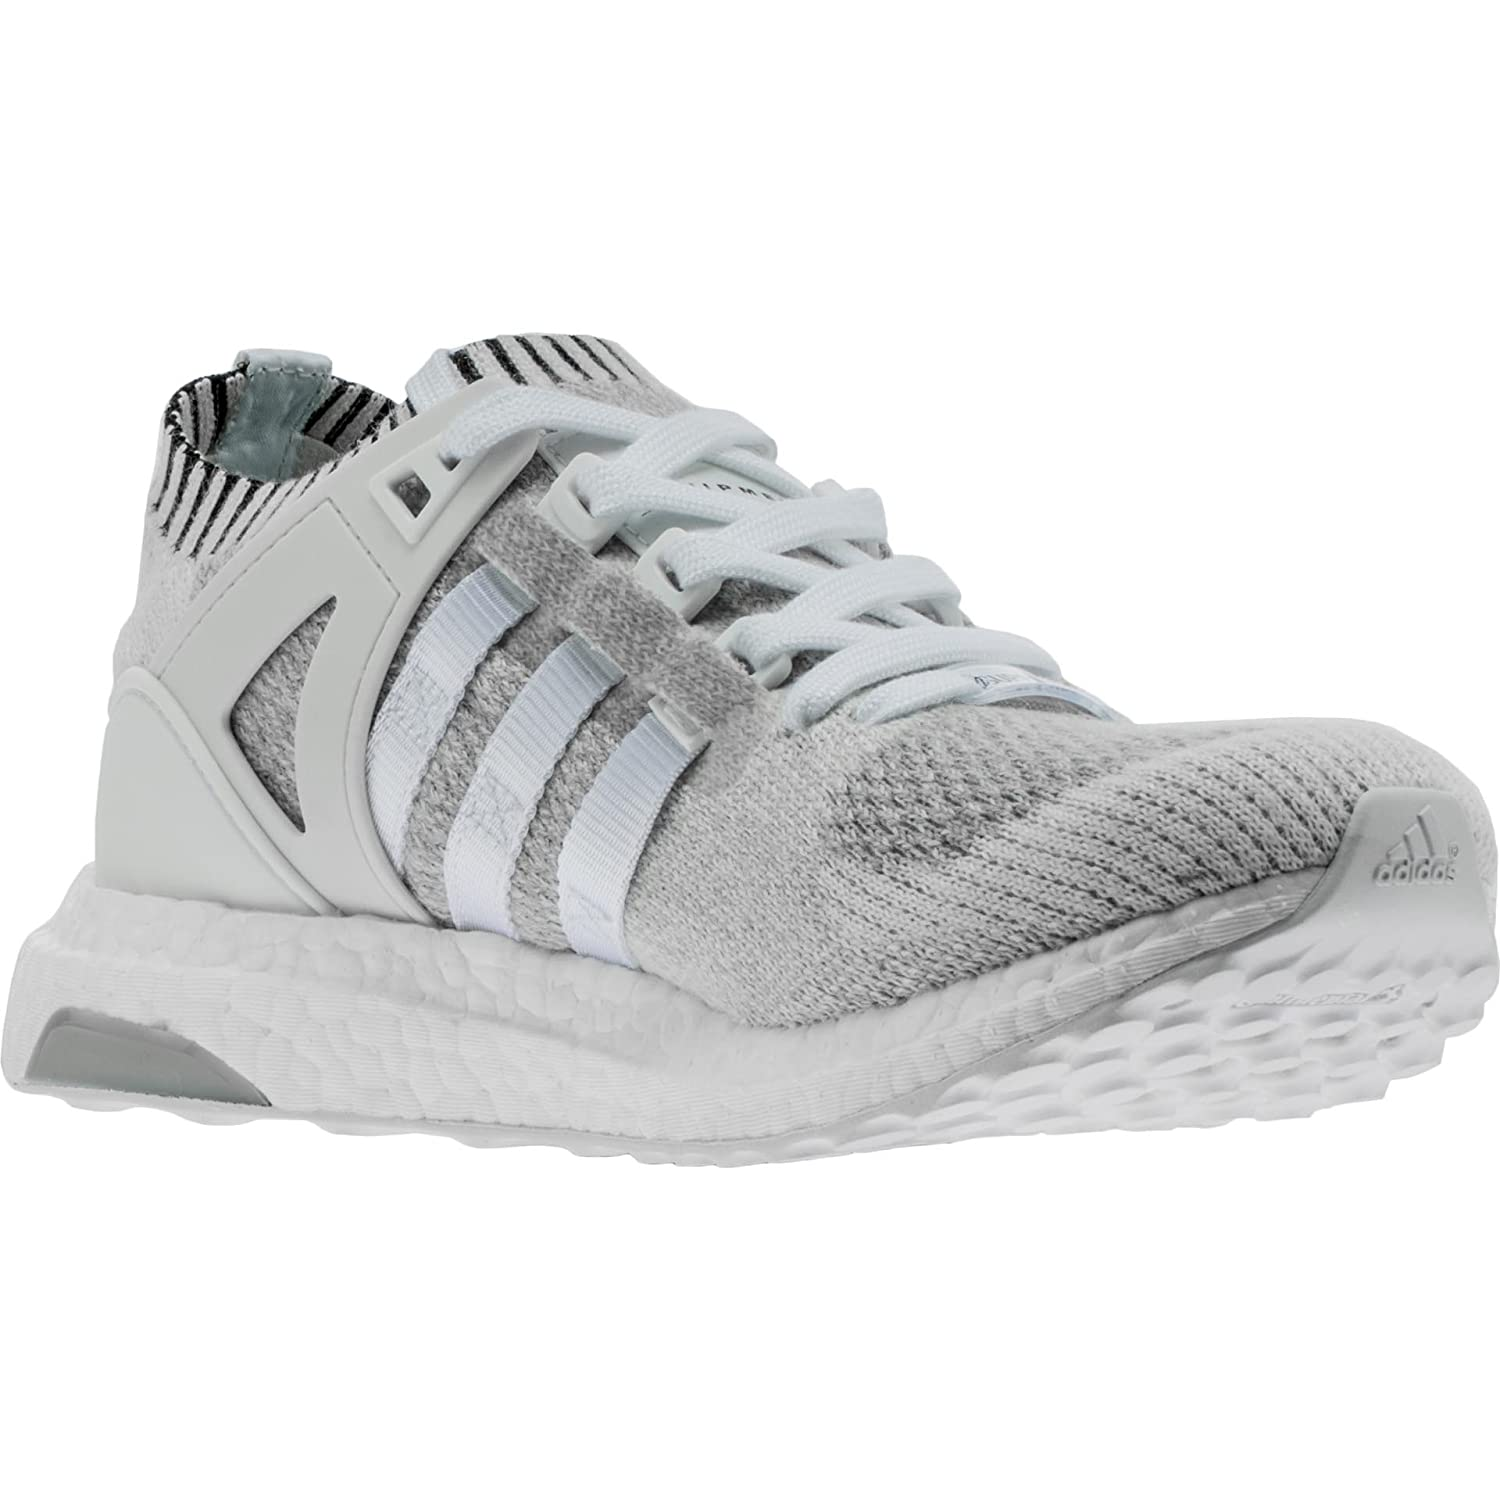 Adidas Black EQT Racing ADV sneakers for Women Level Shoes